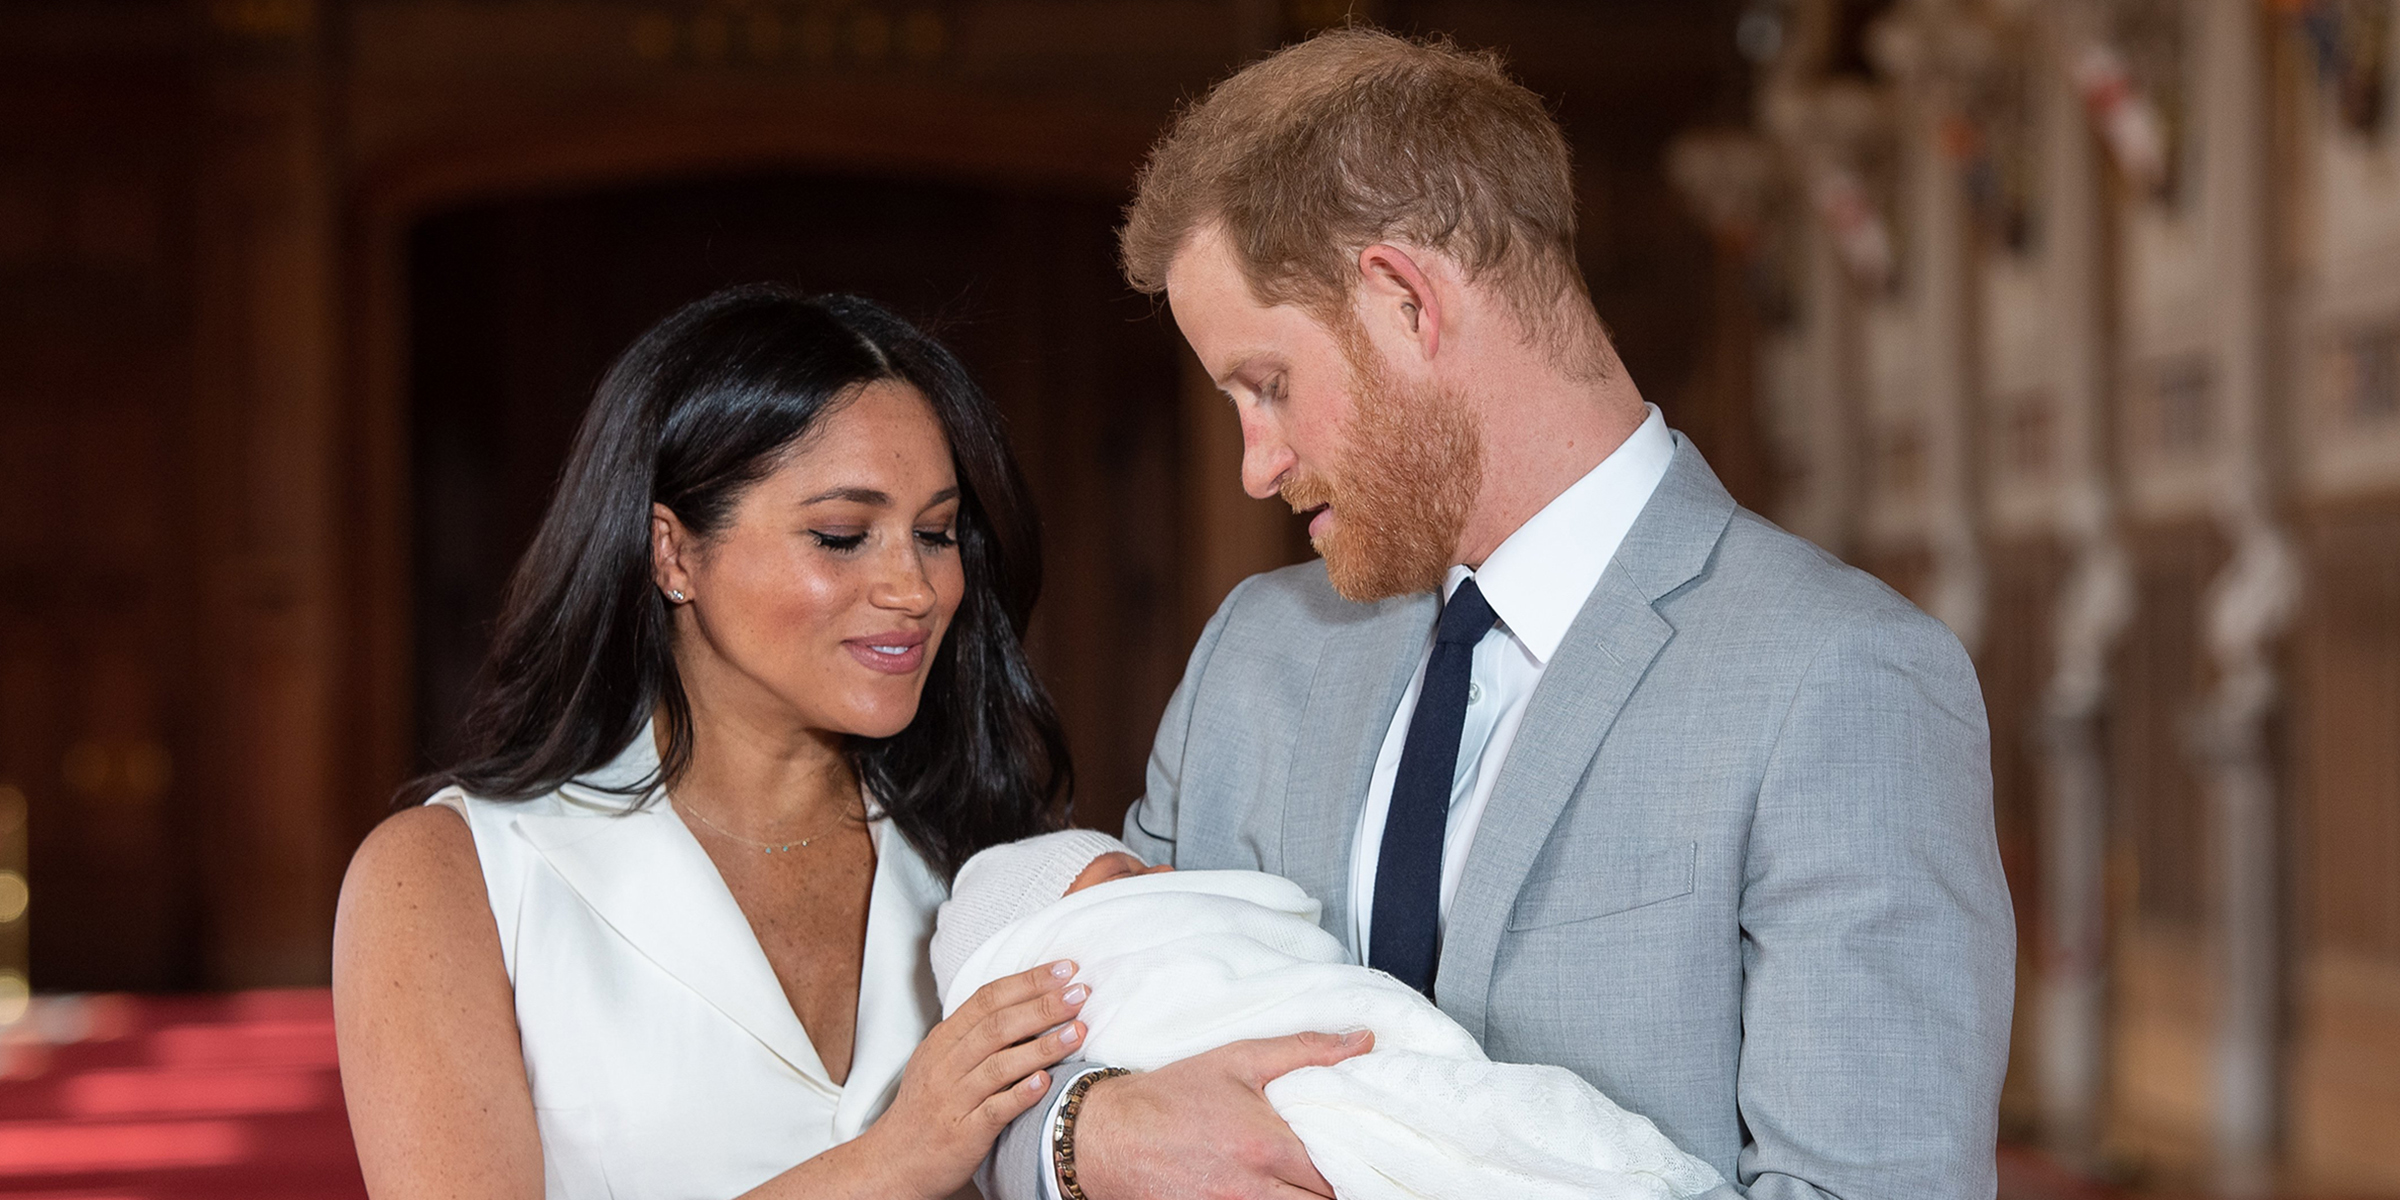 Radio host fired over offensive royal baby tweet